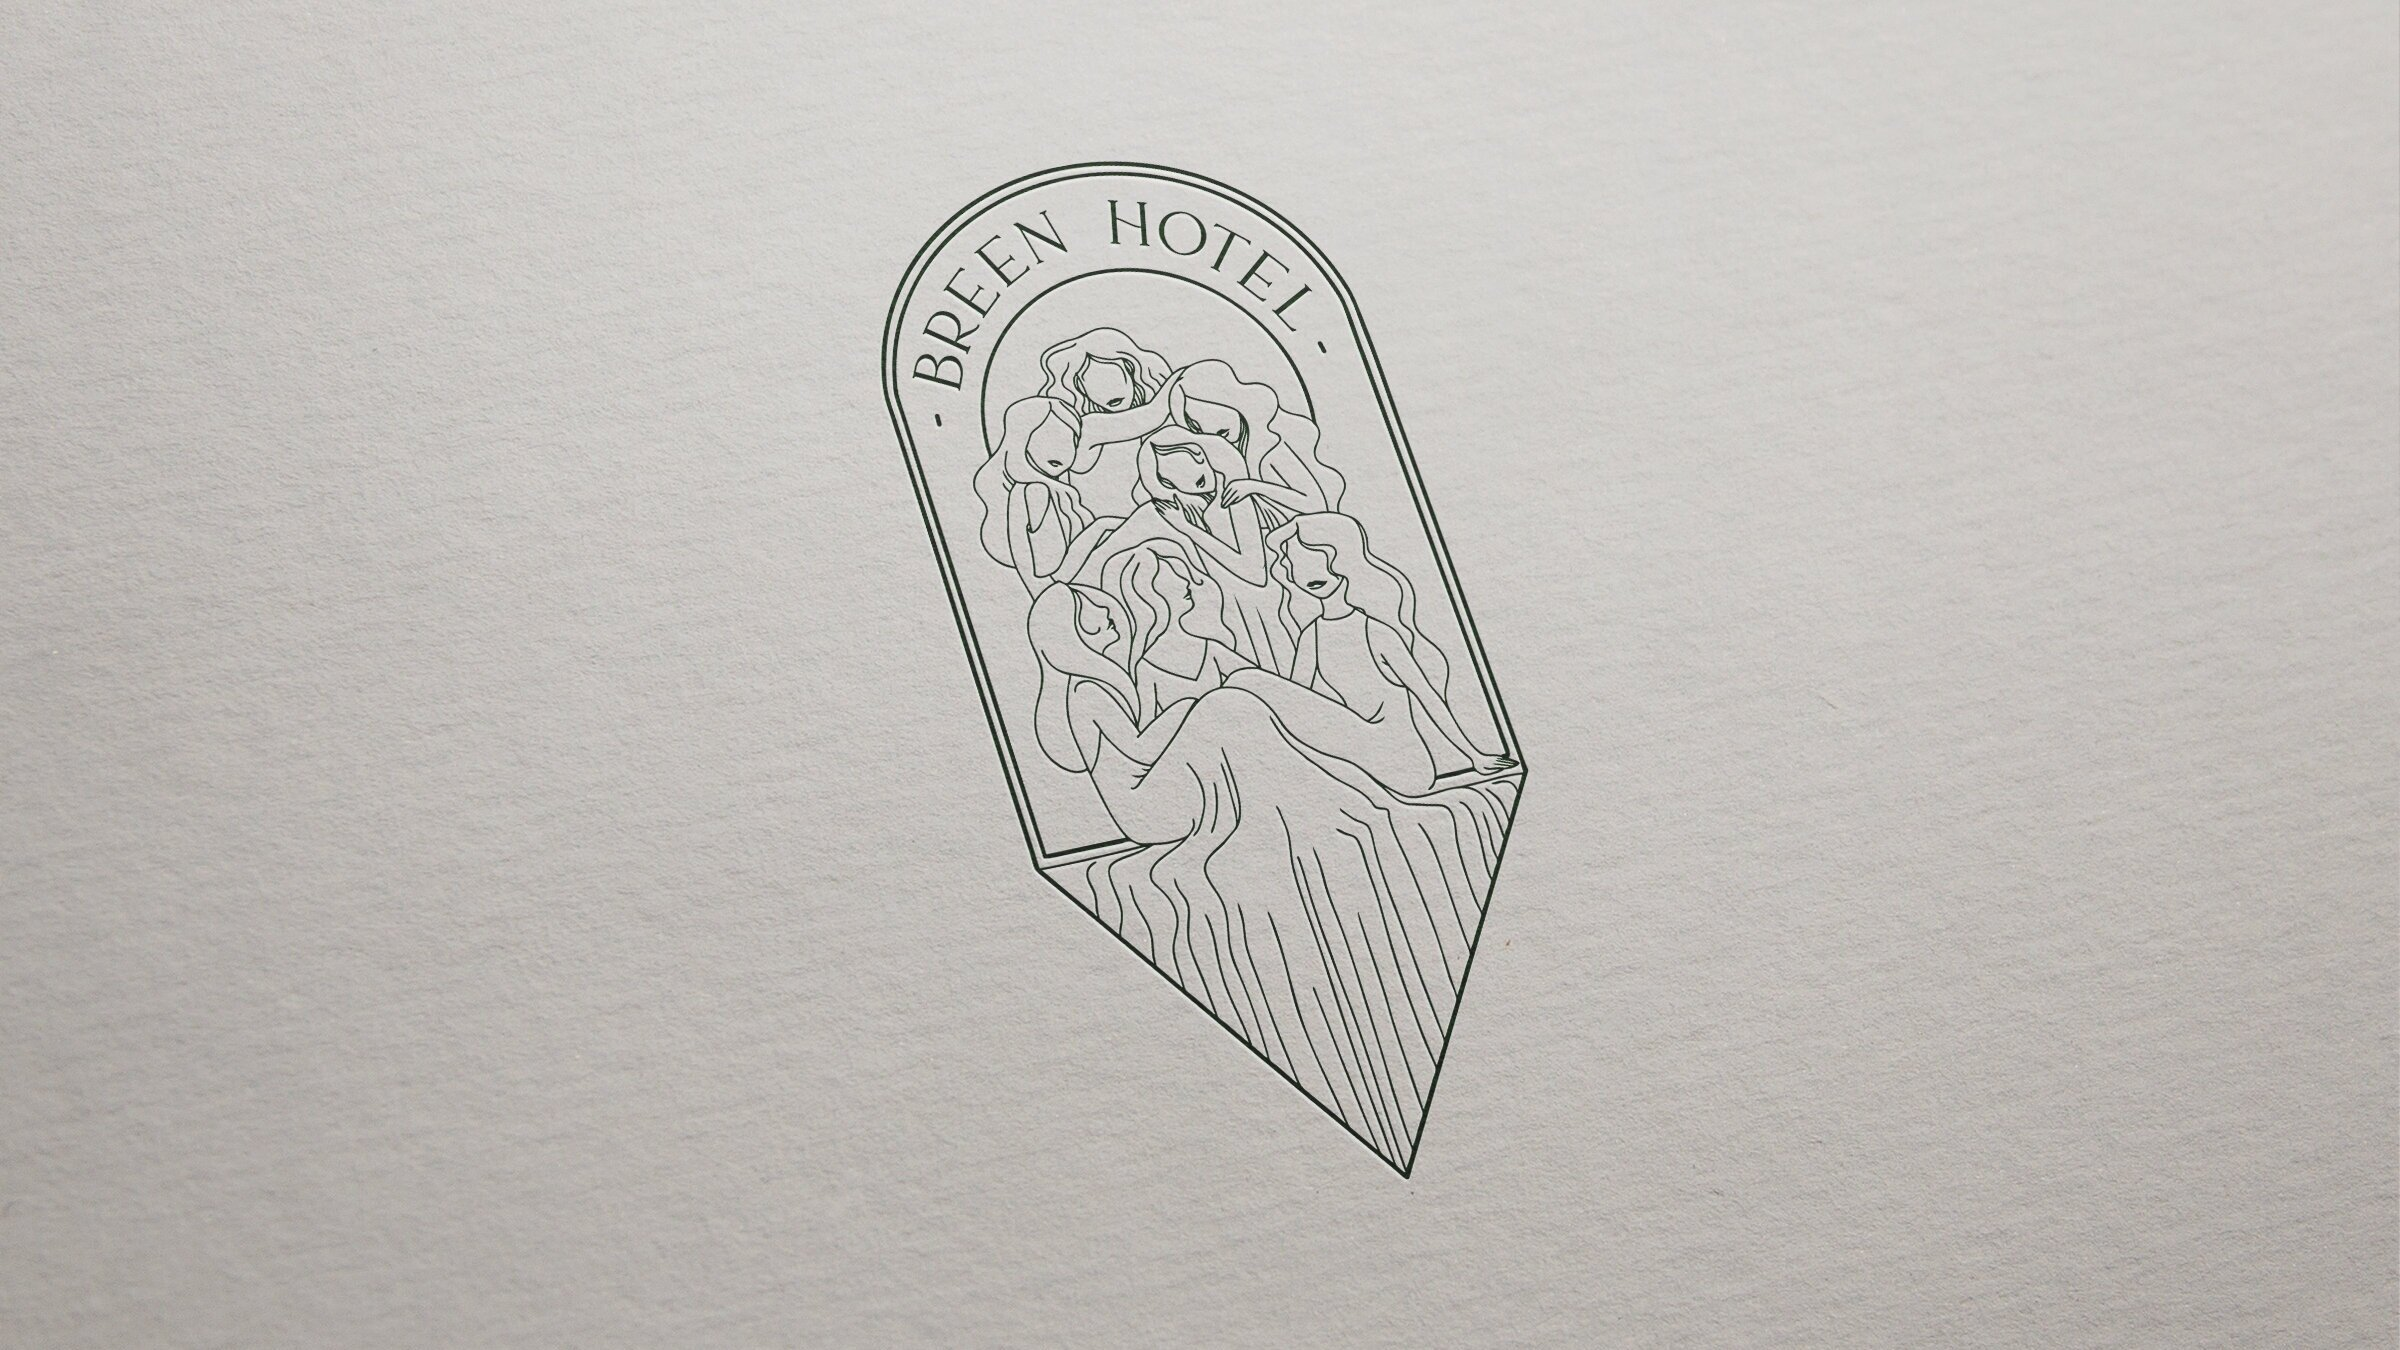 Breen Hotel - BRANDING, ART DIRECTION & WEBSITE